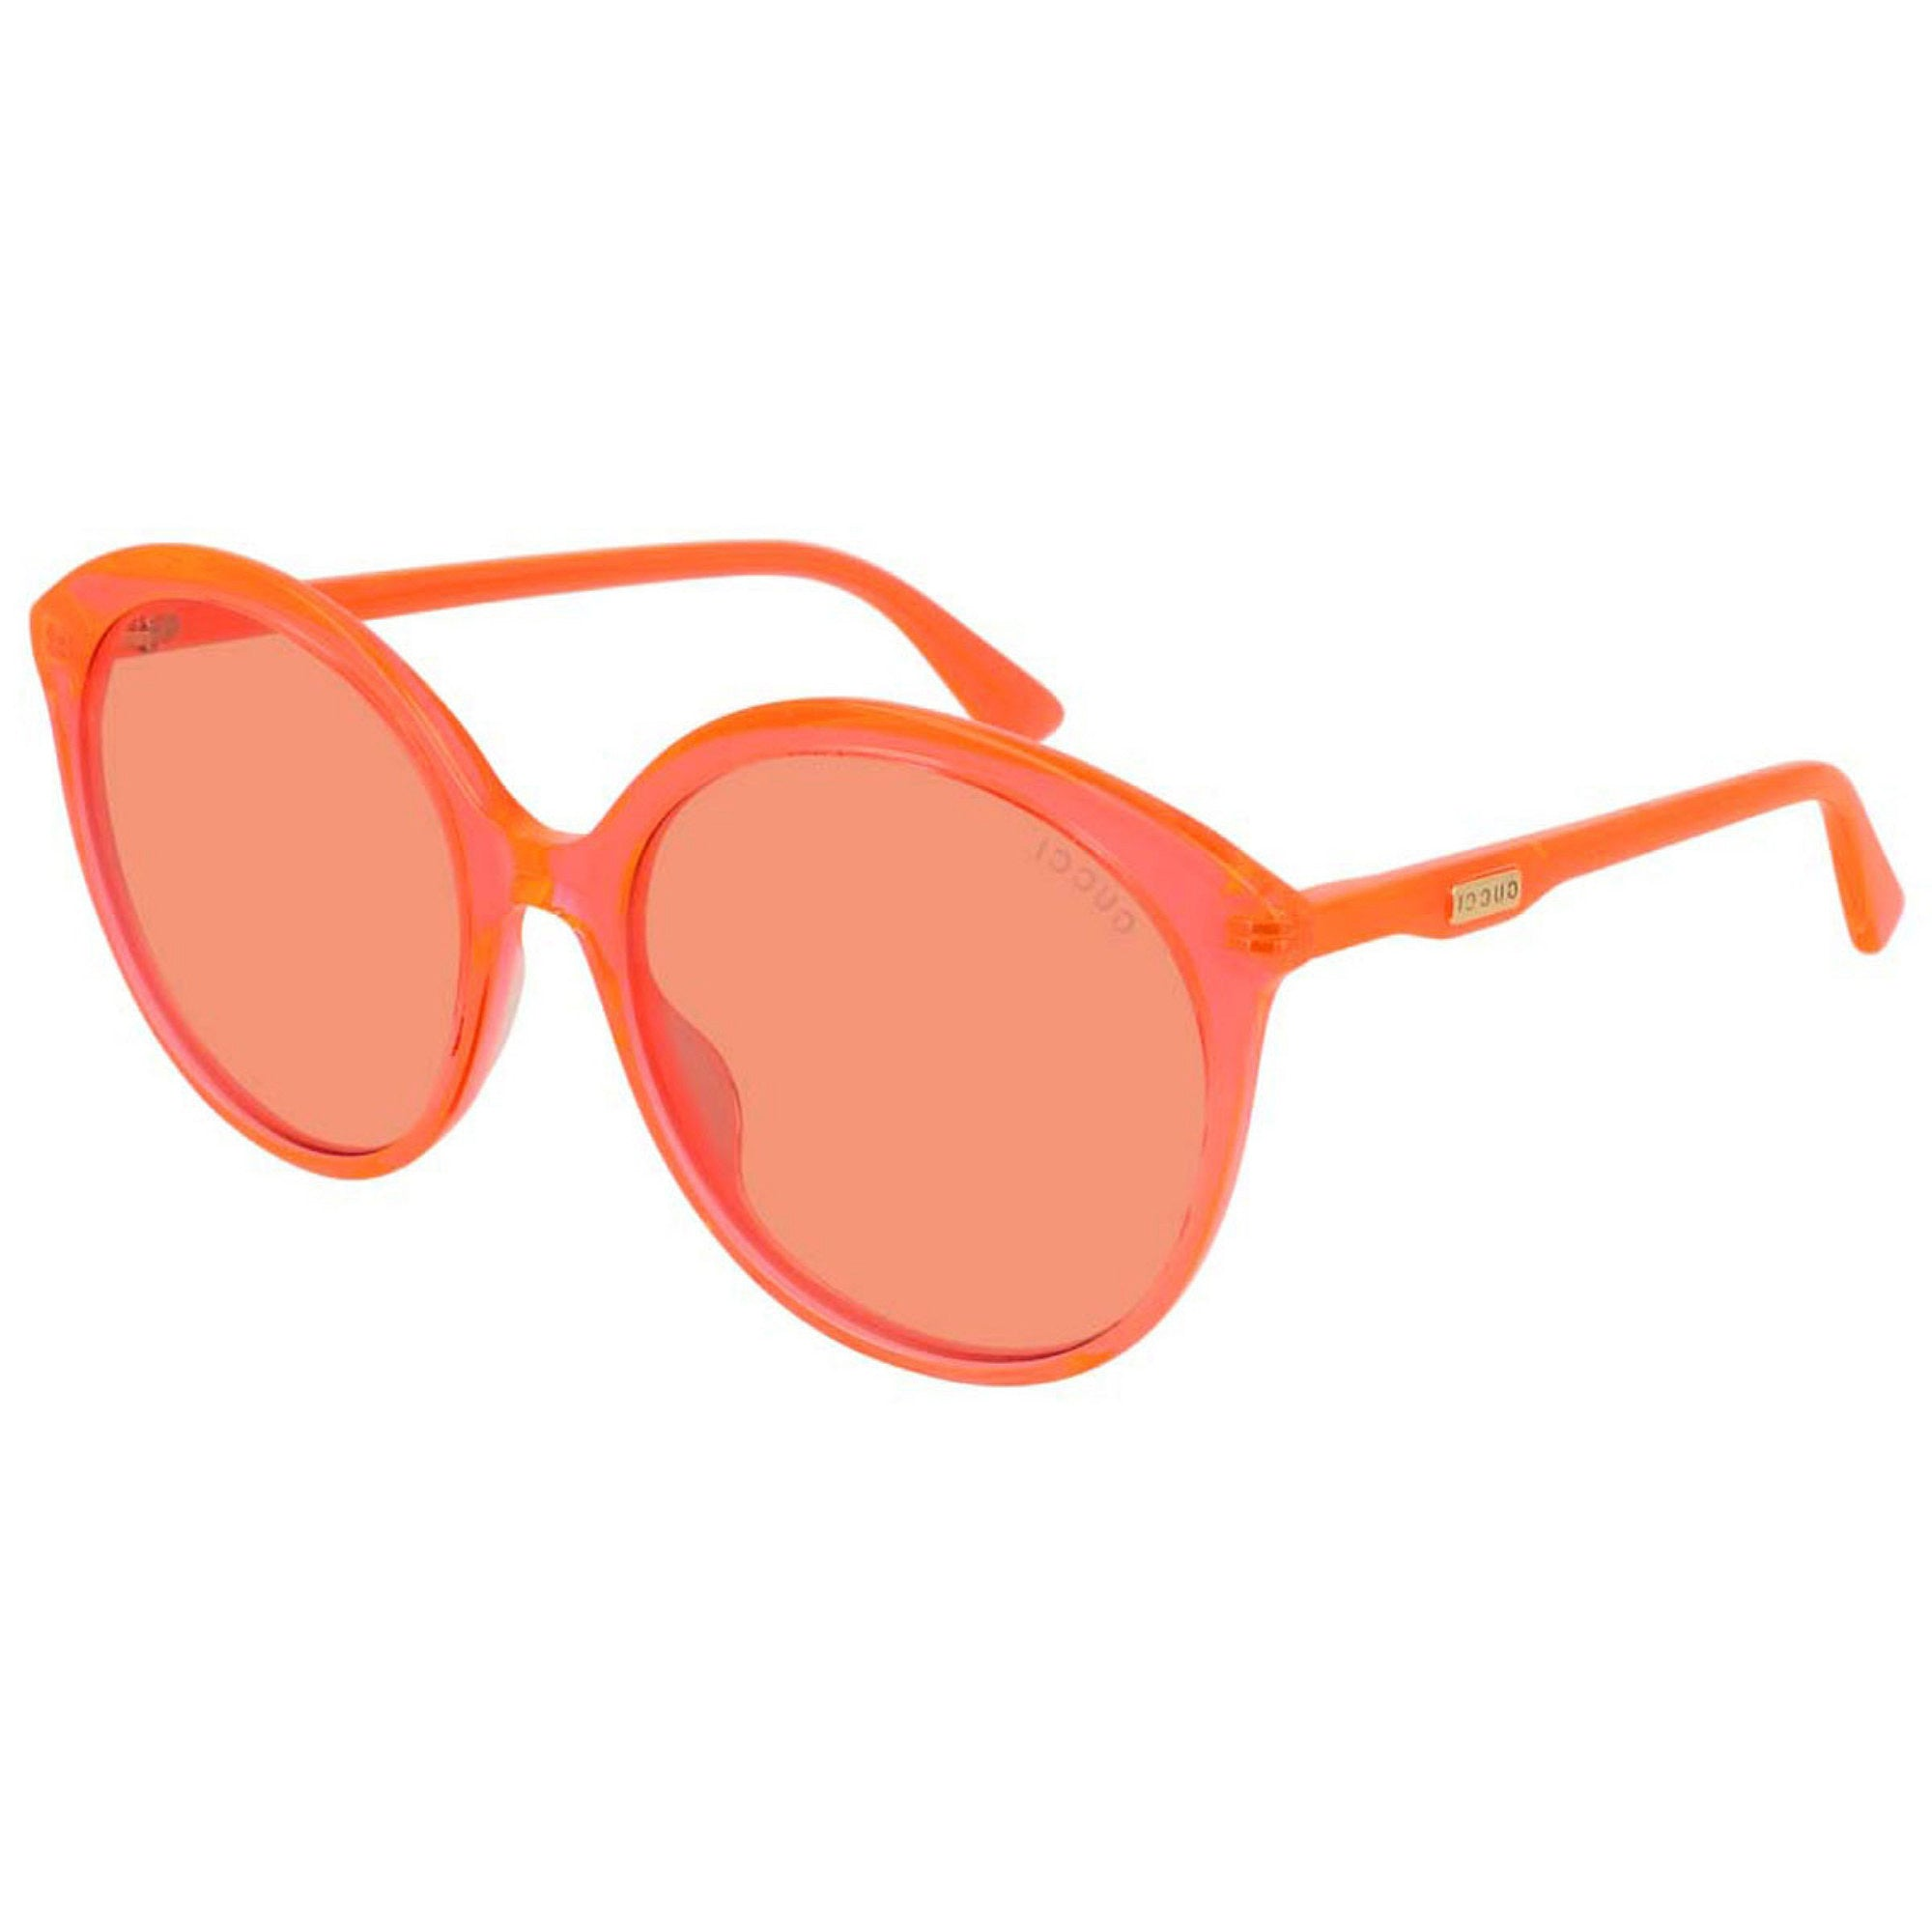 Gucci Eyewear Transparent Circle Sunglasses - Orange